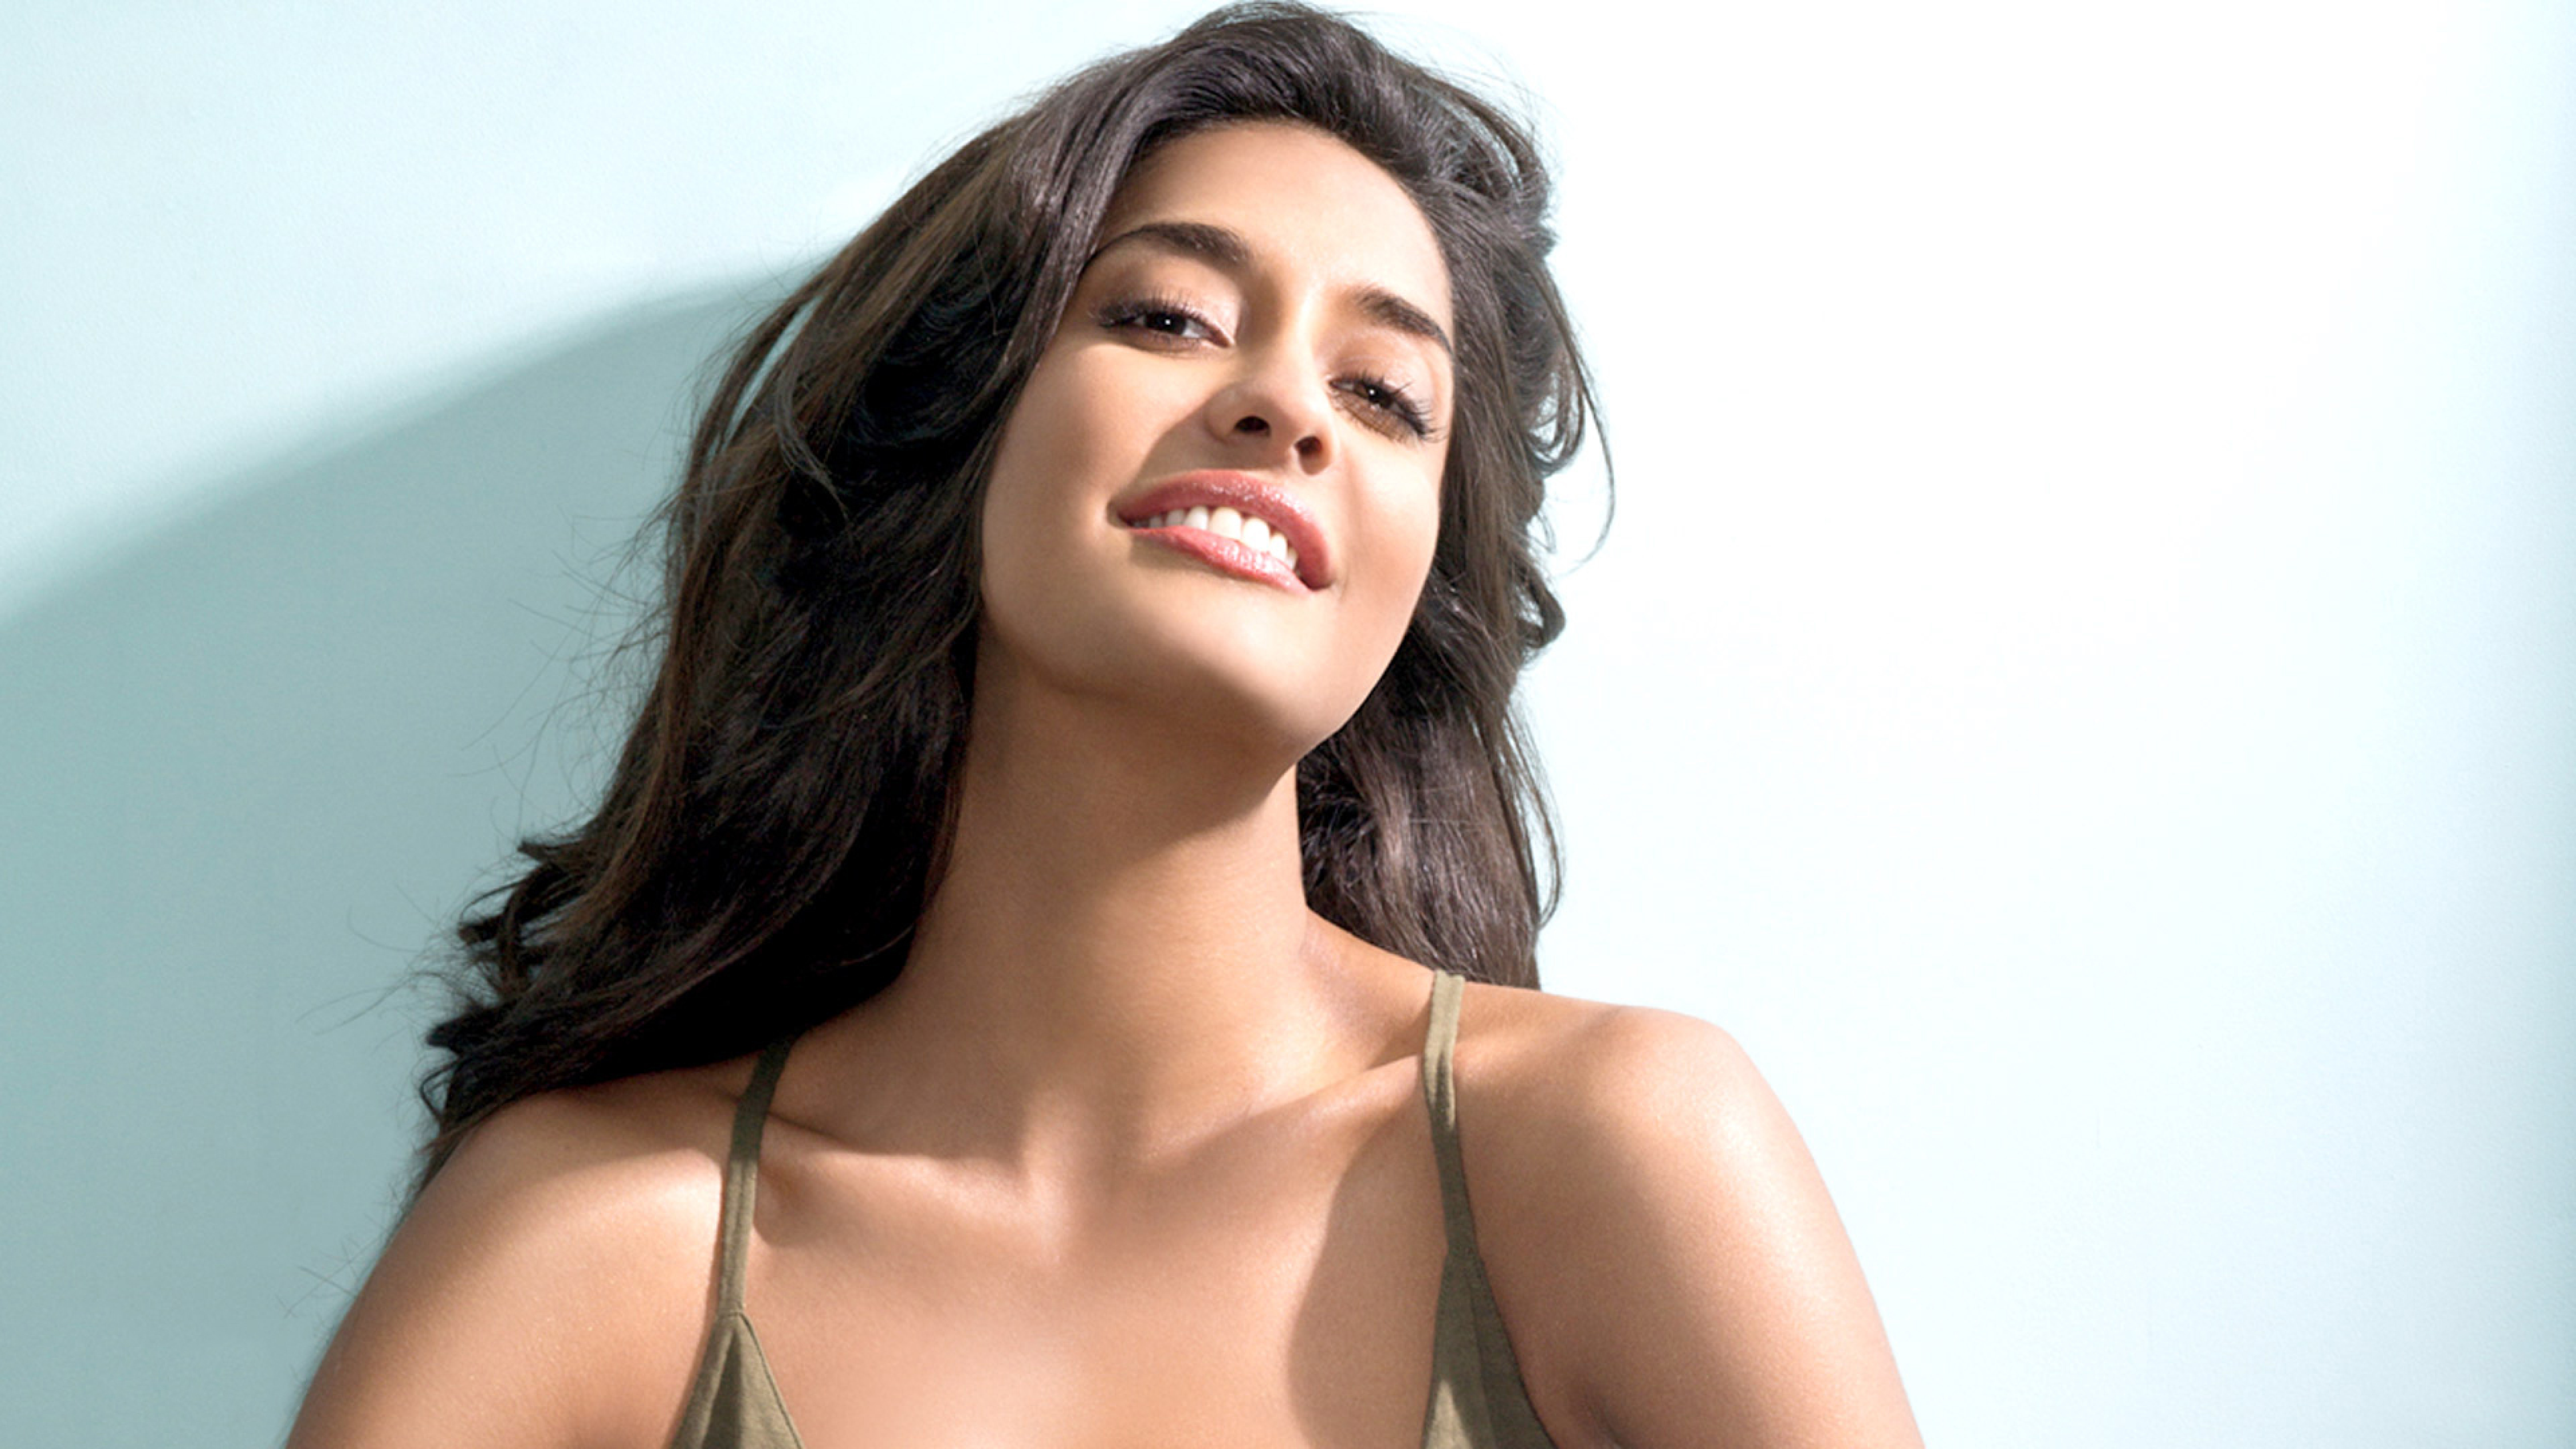 5120x2880 lisa haydon cute pics 5k wallpaper hd indian celebrities 4k wallpapers images photos and background 5120x2880 lisa haydon cute pics 5k